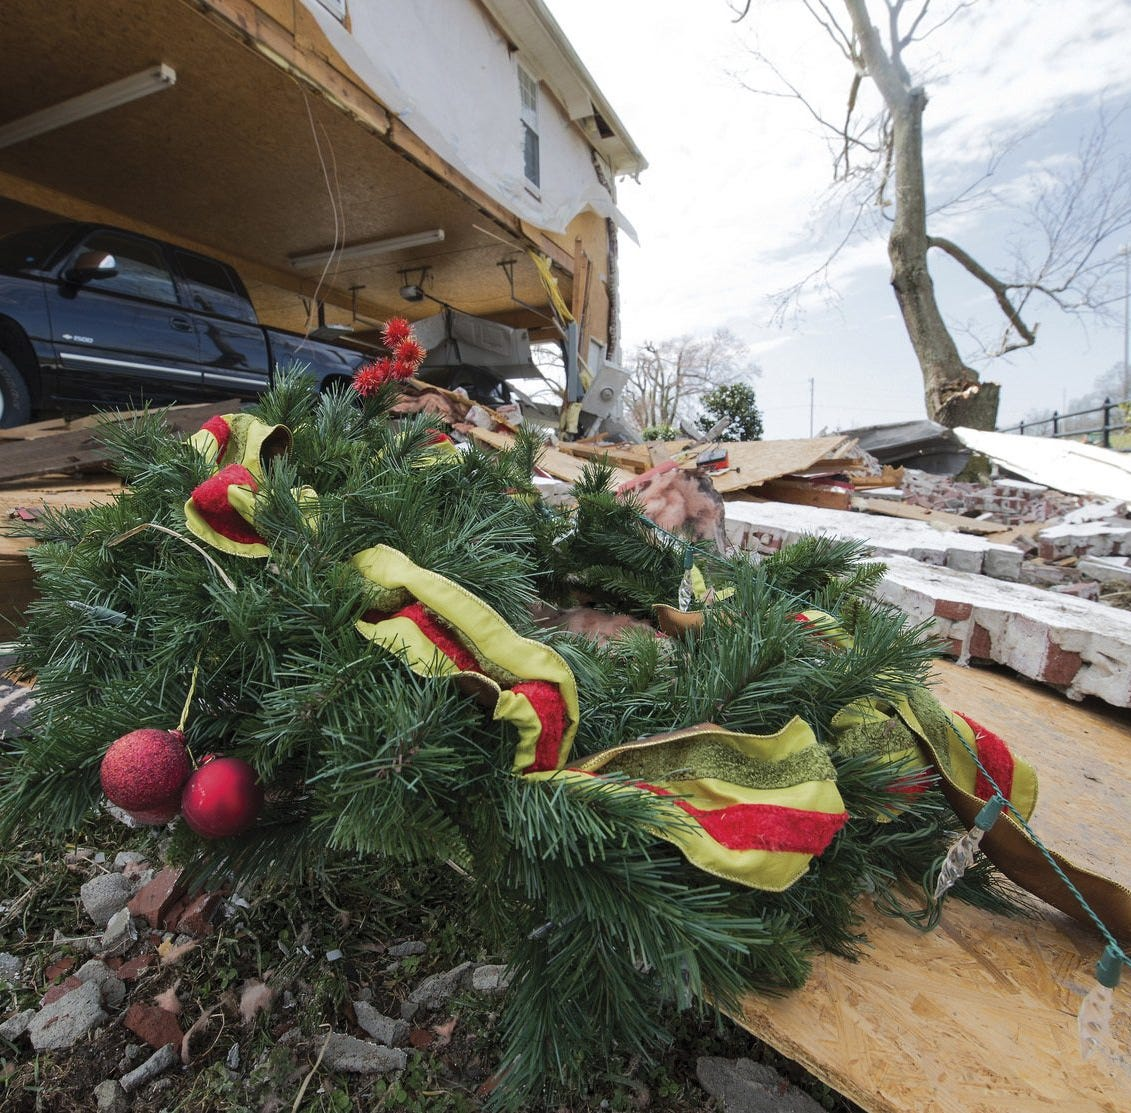 Tornadoes create path of destruction throughout the region, from Paducah to Columbus